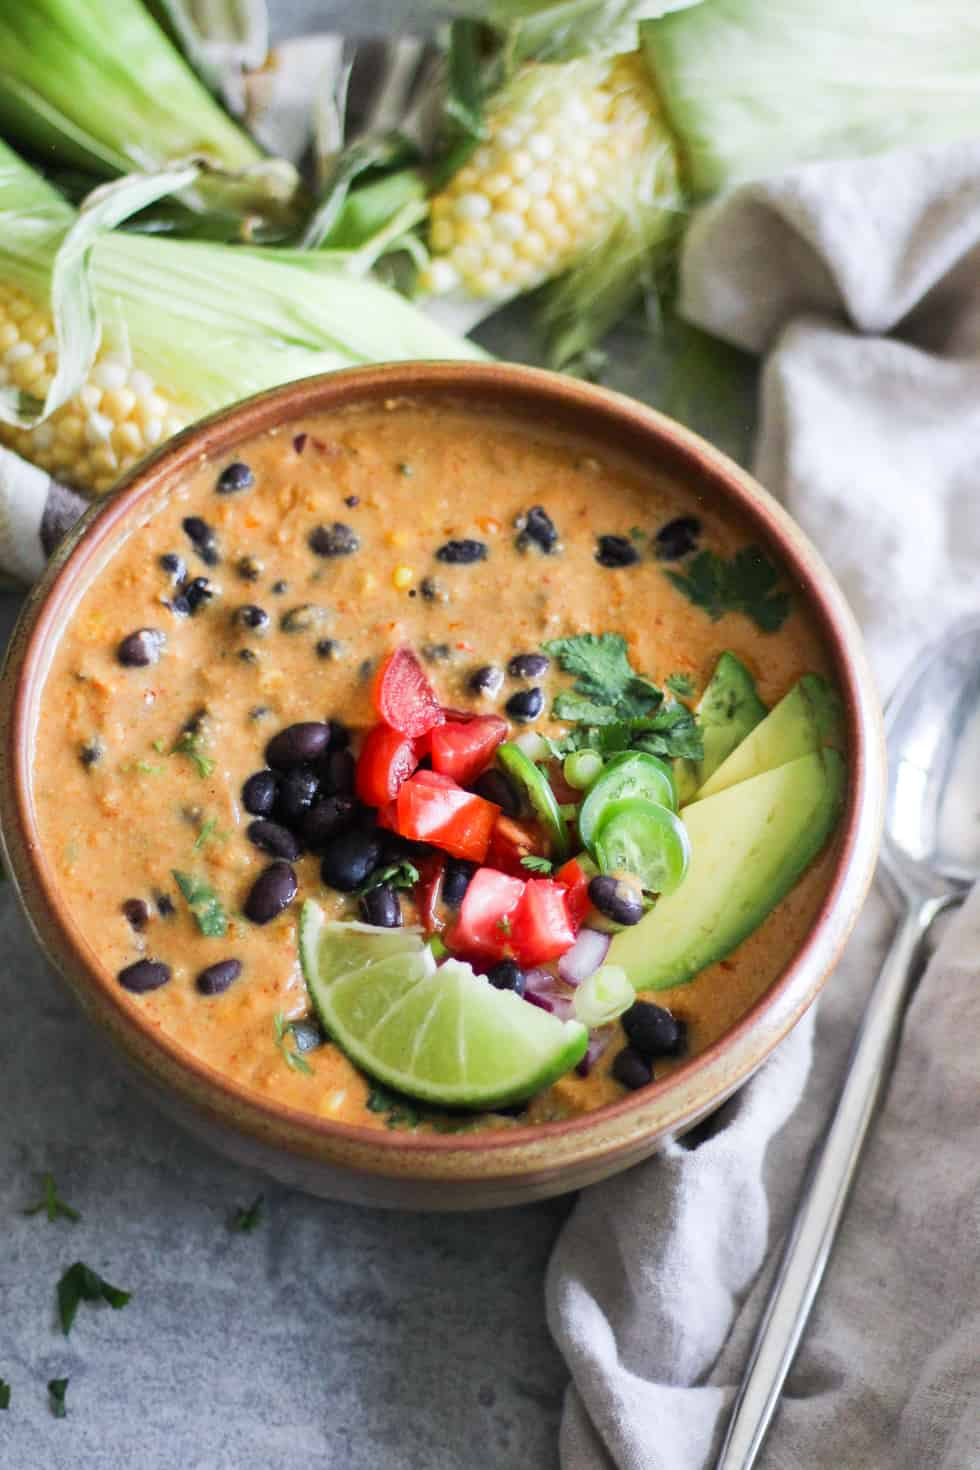 Ceramic bowl filled with soup and topped with avocado, tomato, black beans and lime.